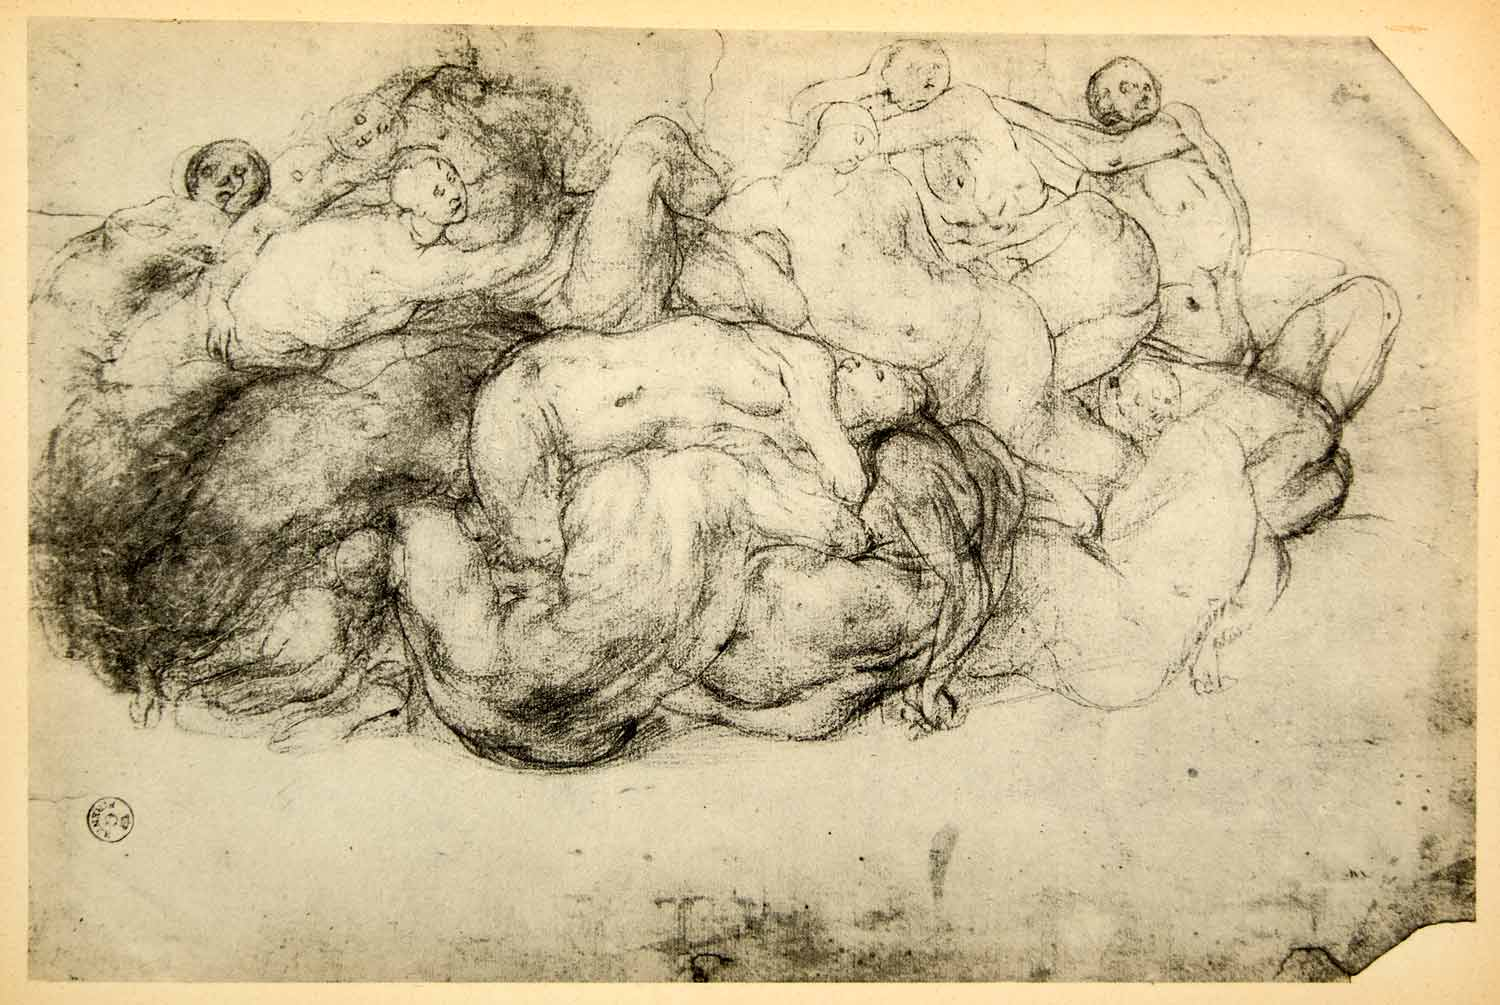 1943 Print Jacopo Carucci Pontormo Nude Portrait Orgy Group Italian DDP1